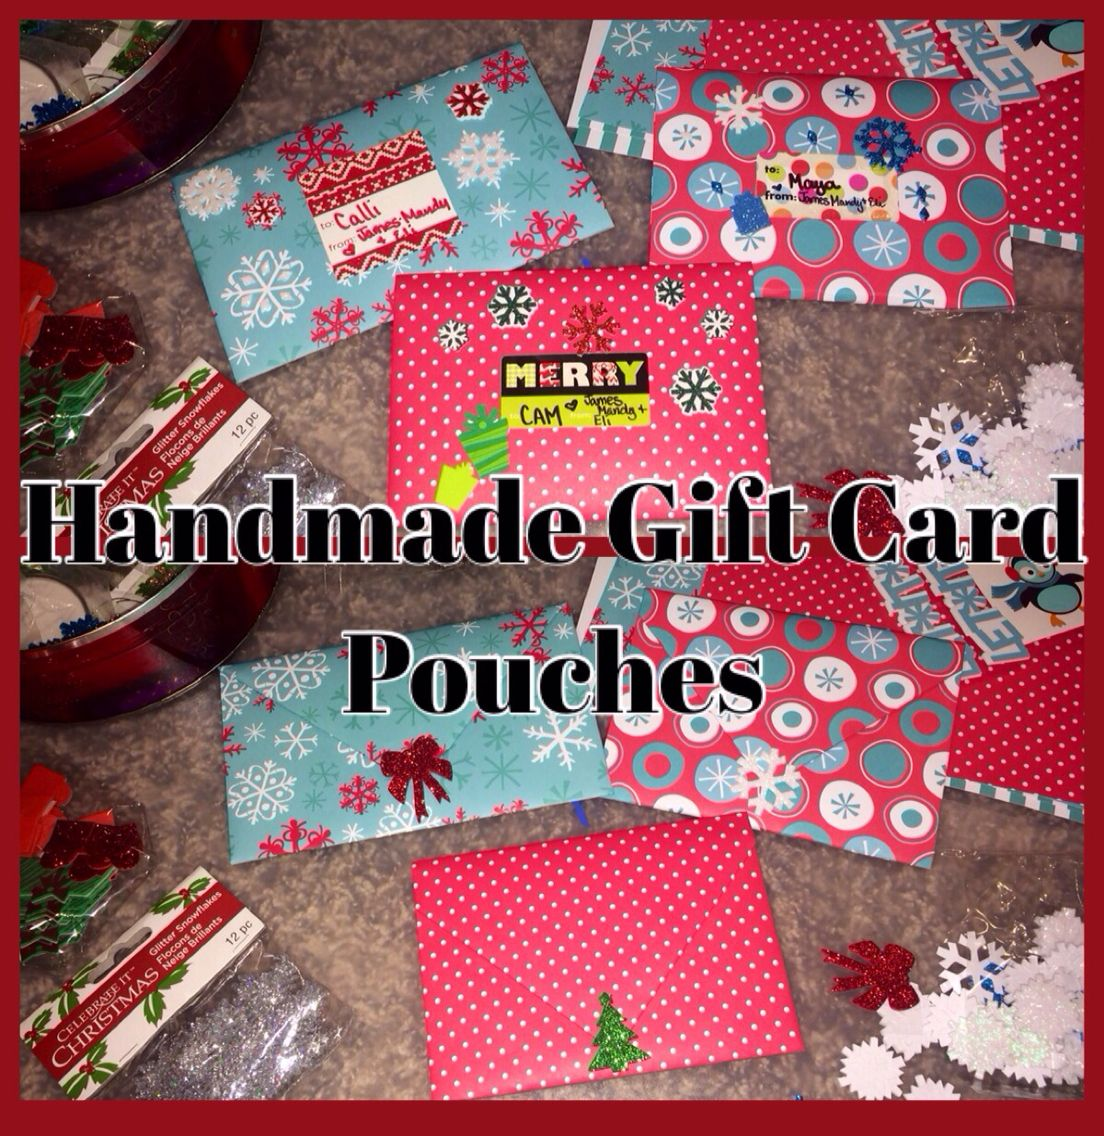 $3 pack of DIY wrapping paper squares that included stickers (could make 8 of these pouches) and in less than 60 seconds I had personalized gift card pouches!